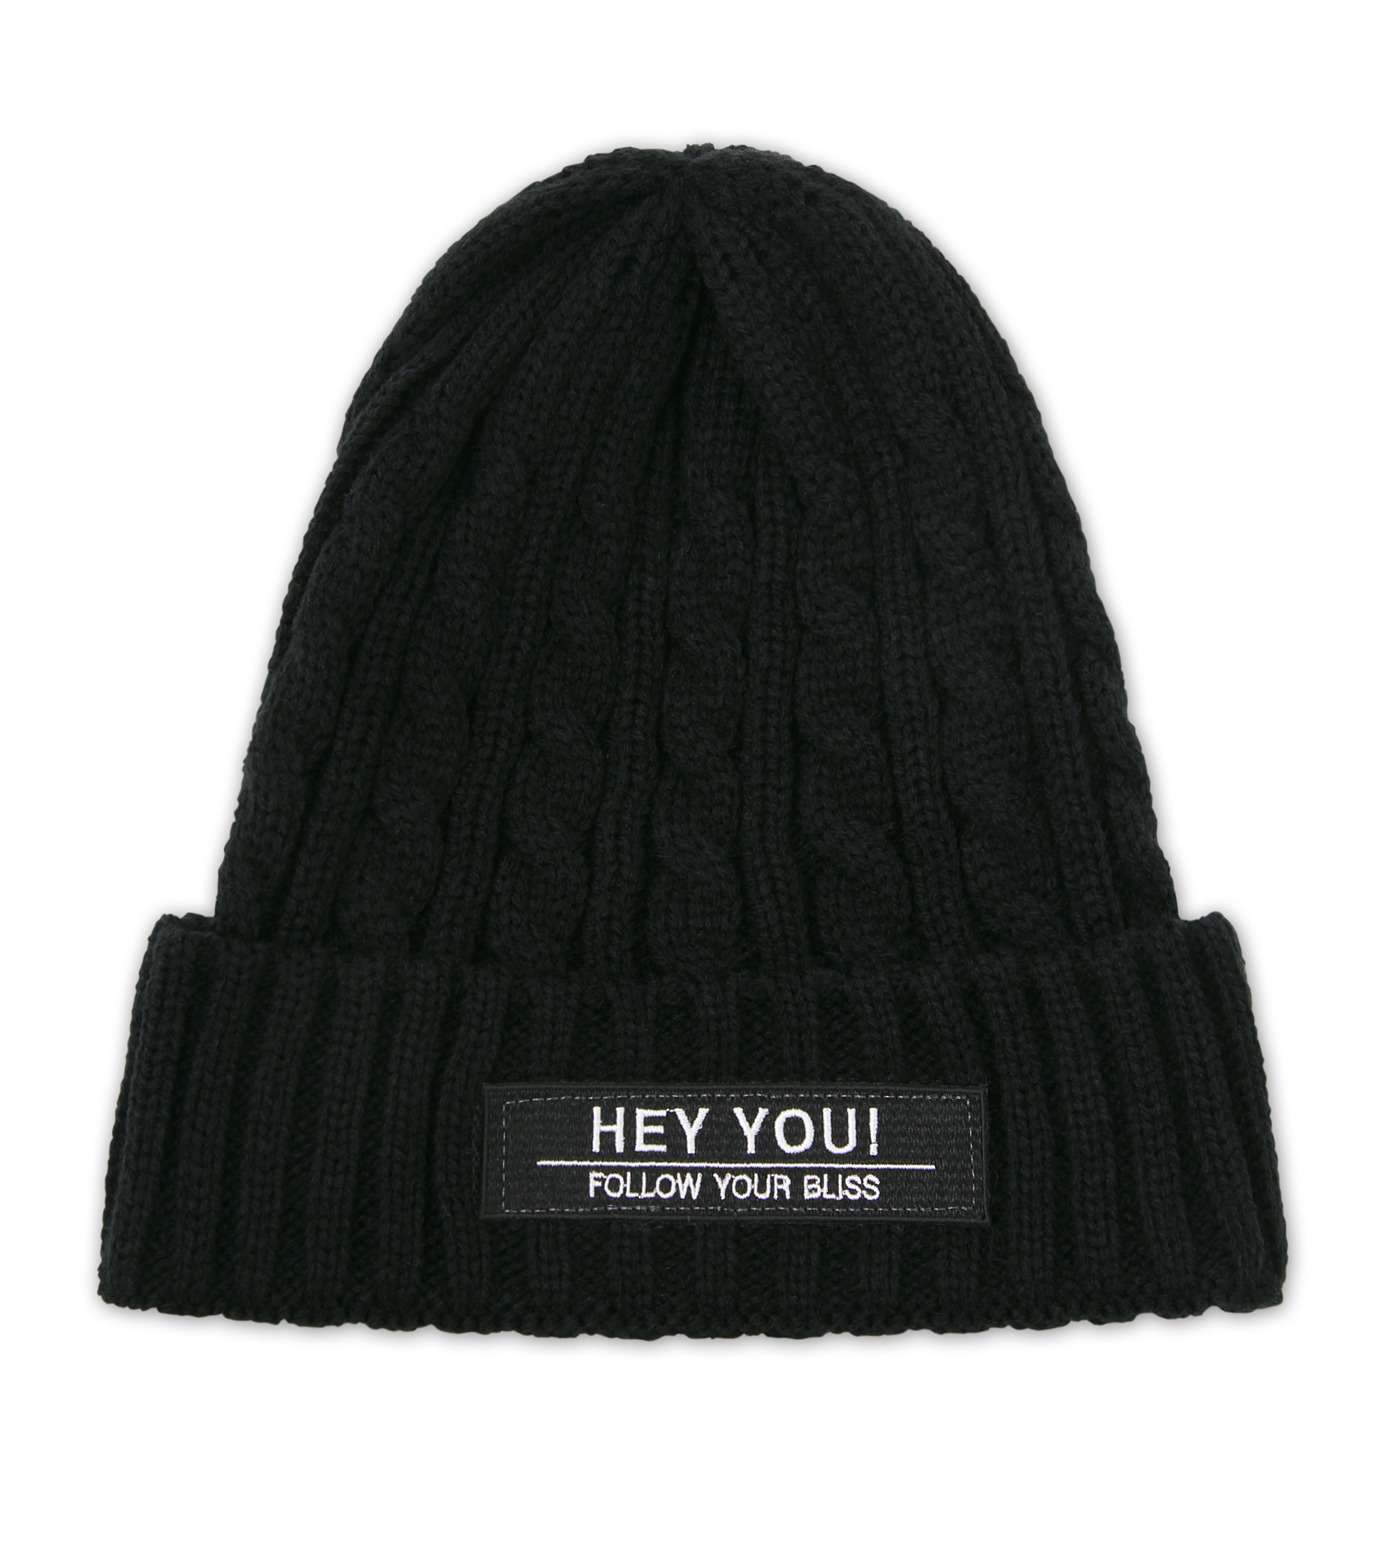 HEY YOU !(ヘイユウ)のCABLE KNIT CAP-BLACK(キャップ/cap)-17A90009-13 拡大詳細画像1